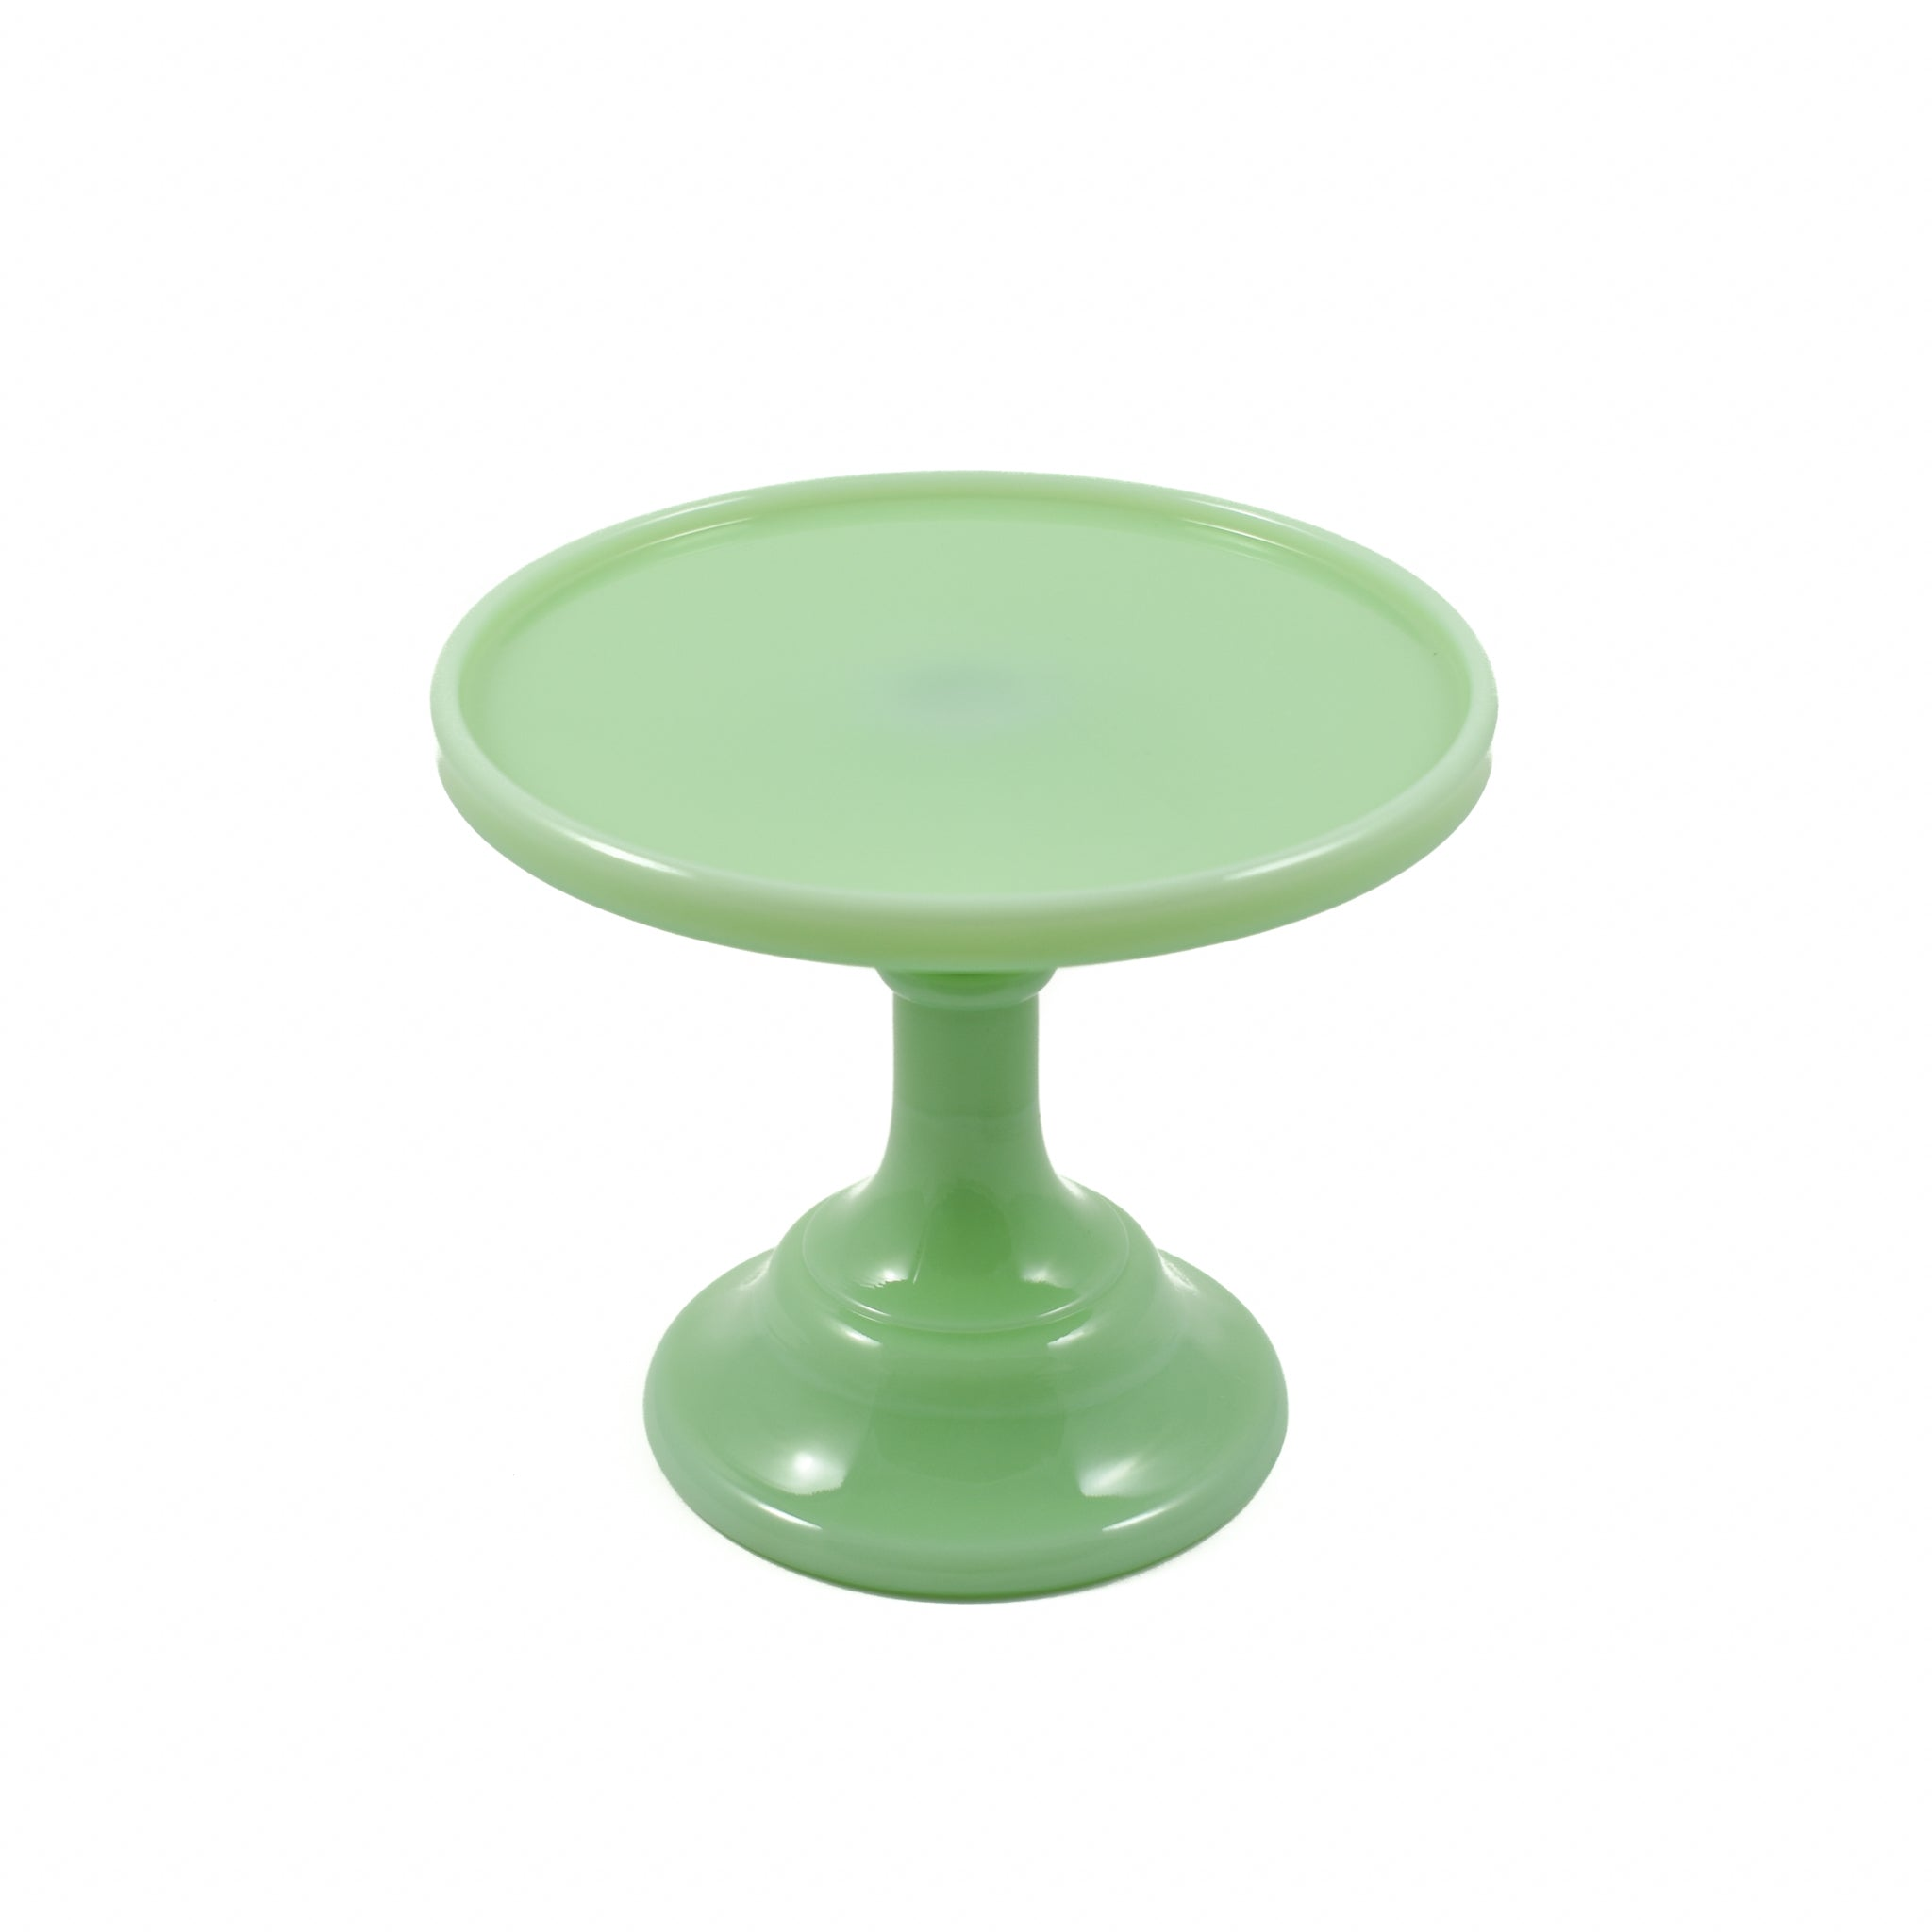 Mosser Glass Jade Milk Glass Cake Stand